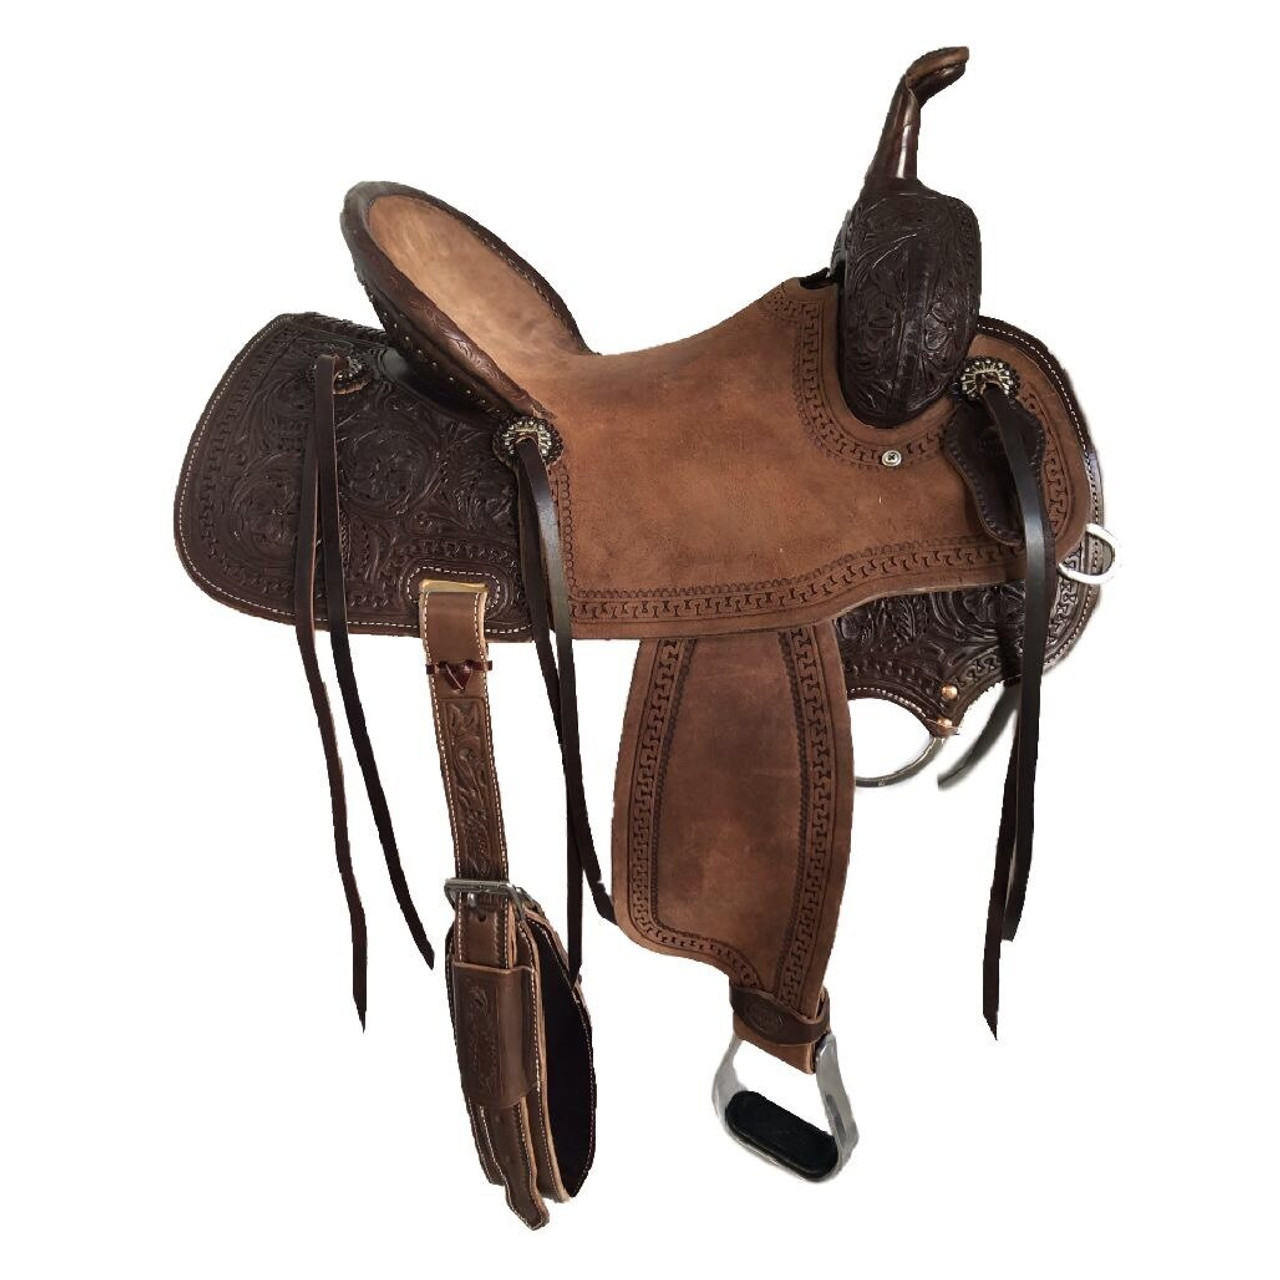 New Jackson Stock Saddle by Fort Worth Saddle Co with 15 inch seat.  Chocolate color, half breed construction. Pencil roll seat.  Gullet size is 7.75 inch, weight is 26lbs, and skirt is 26 inch. Made in USA. Limited lifetime warranty.  S997